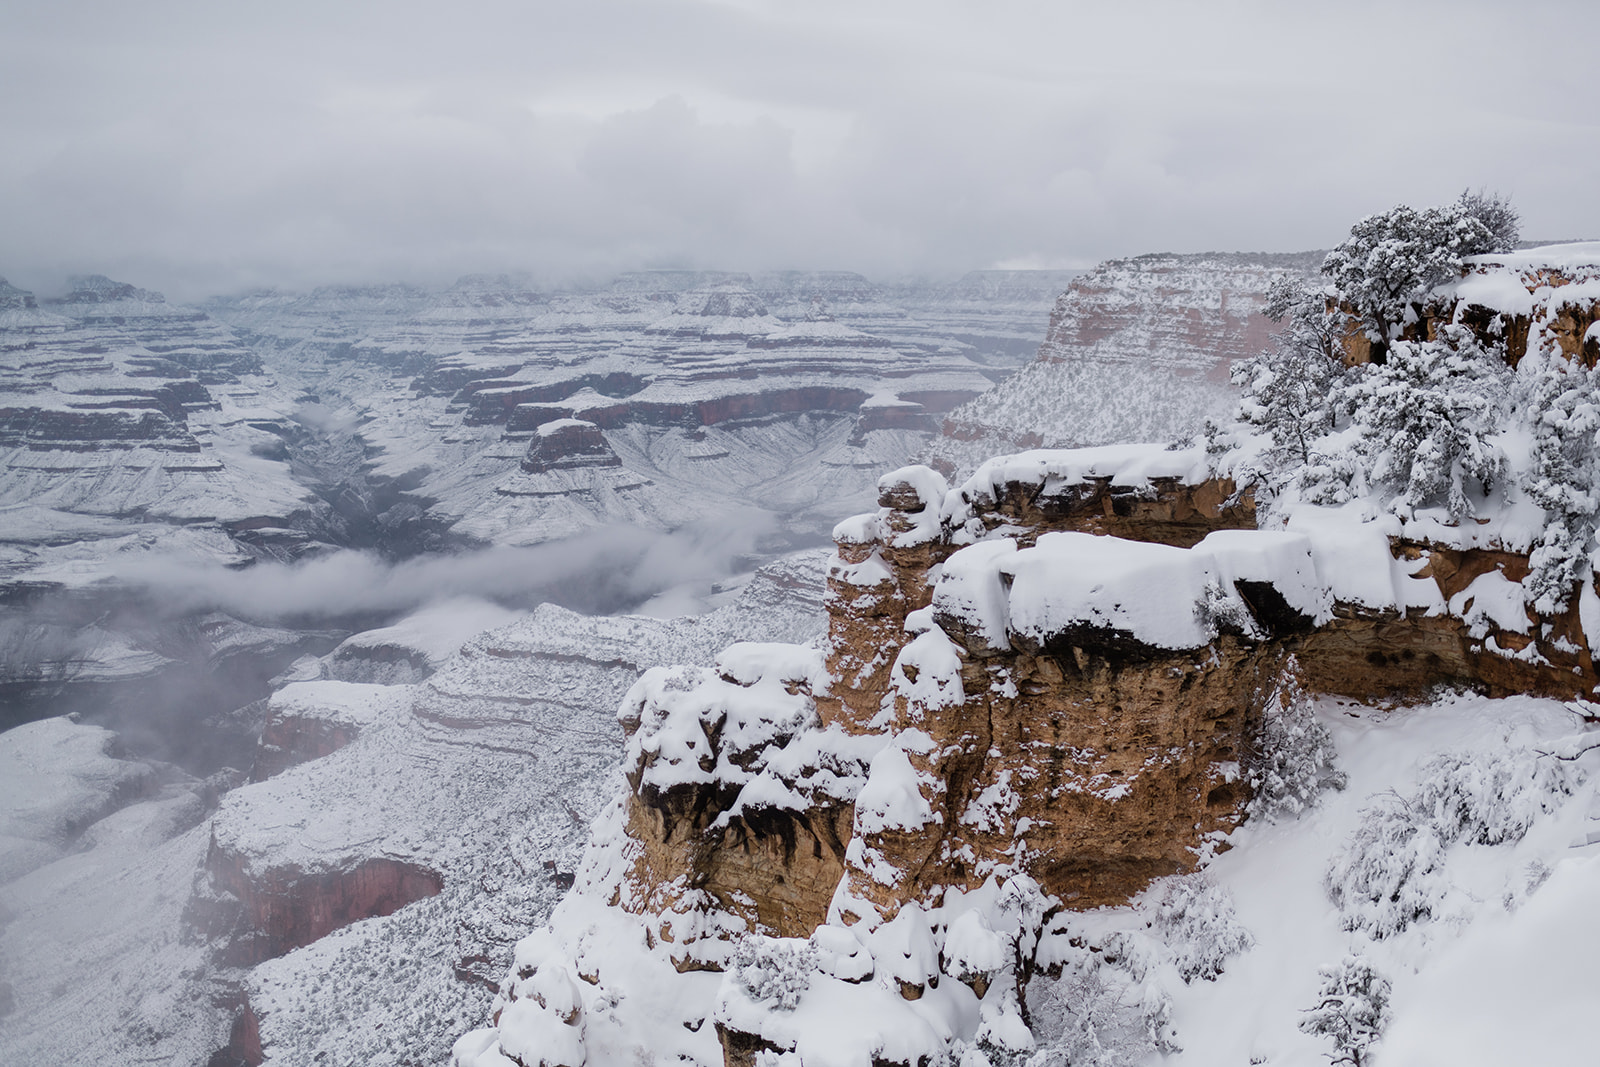 Grand Canyon during winter blizzard. Image by Forthright Photo, wedding and elopement adventure photographers.